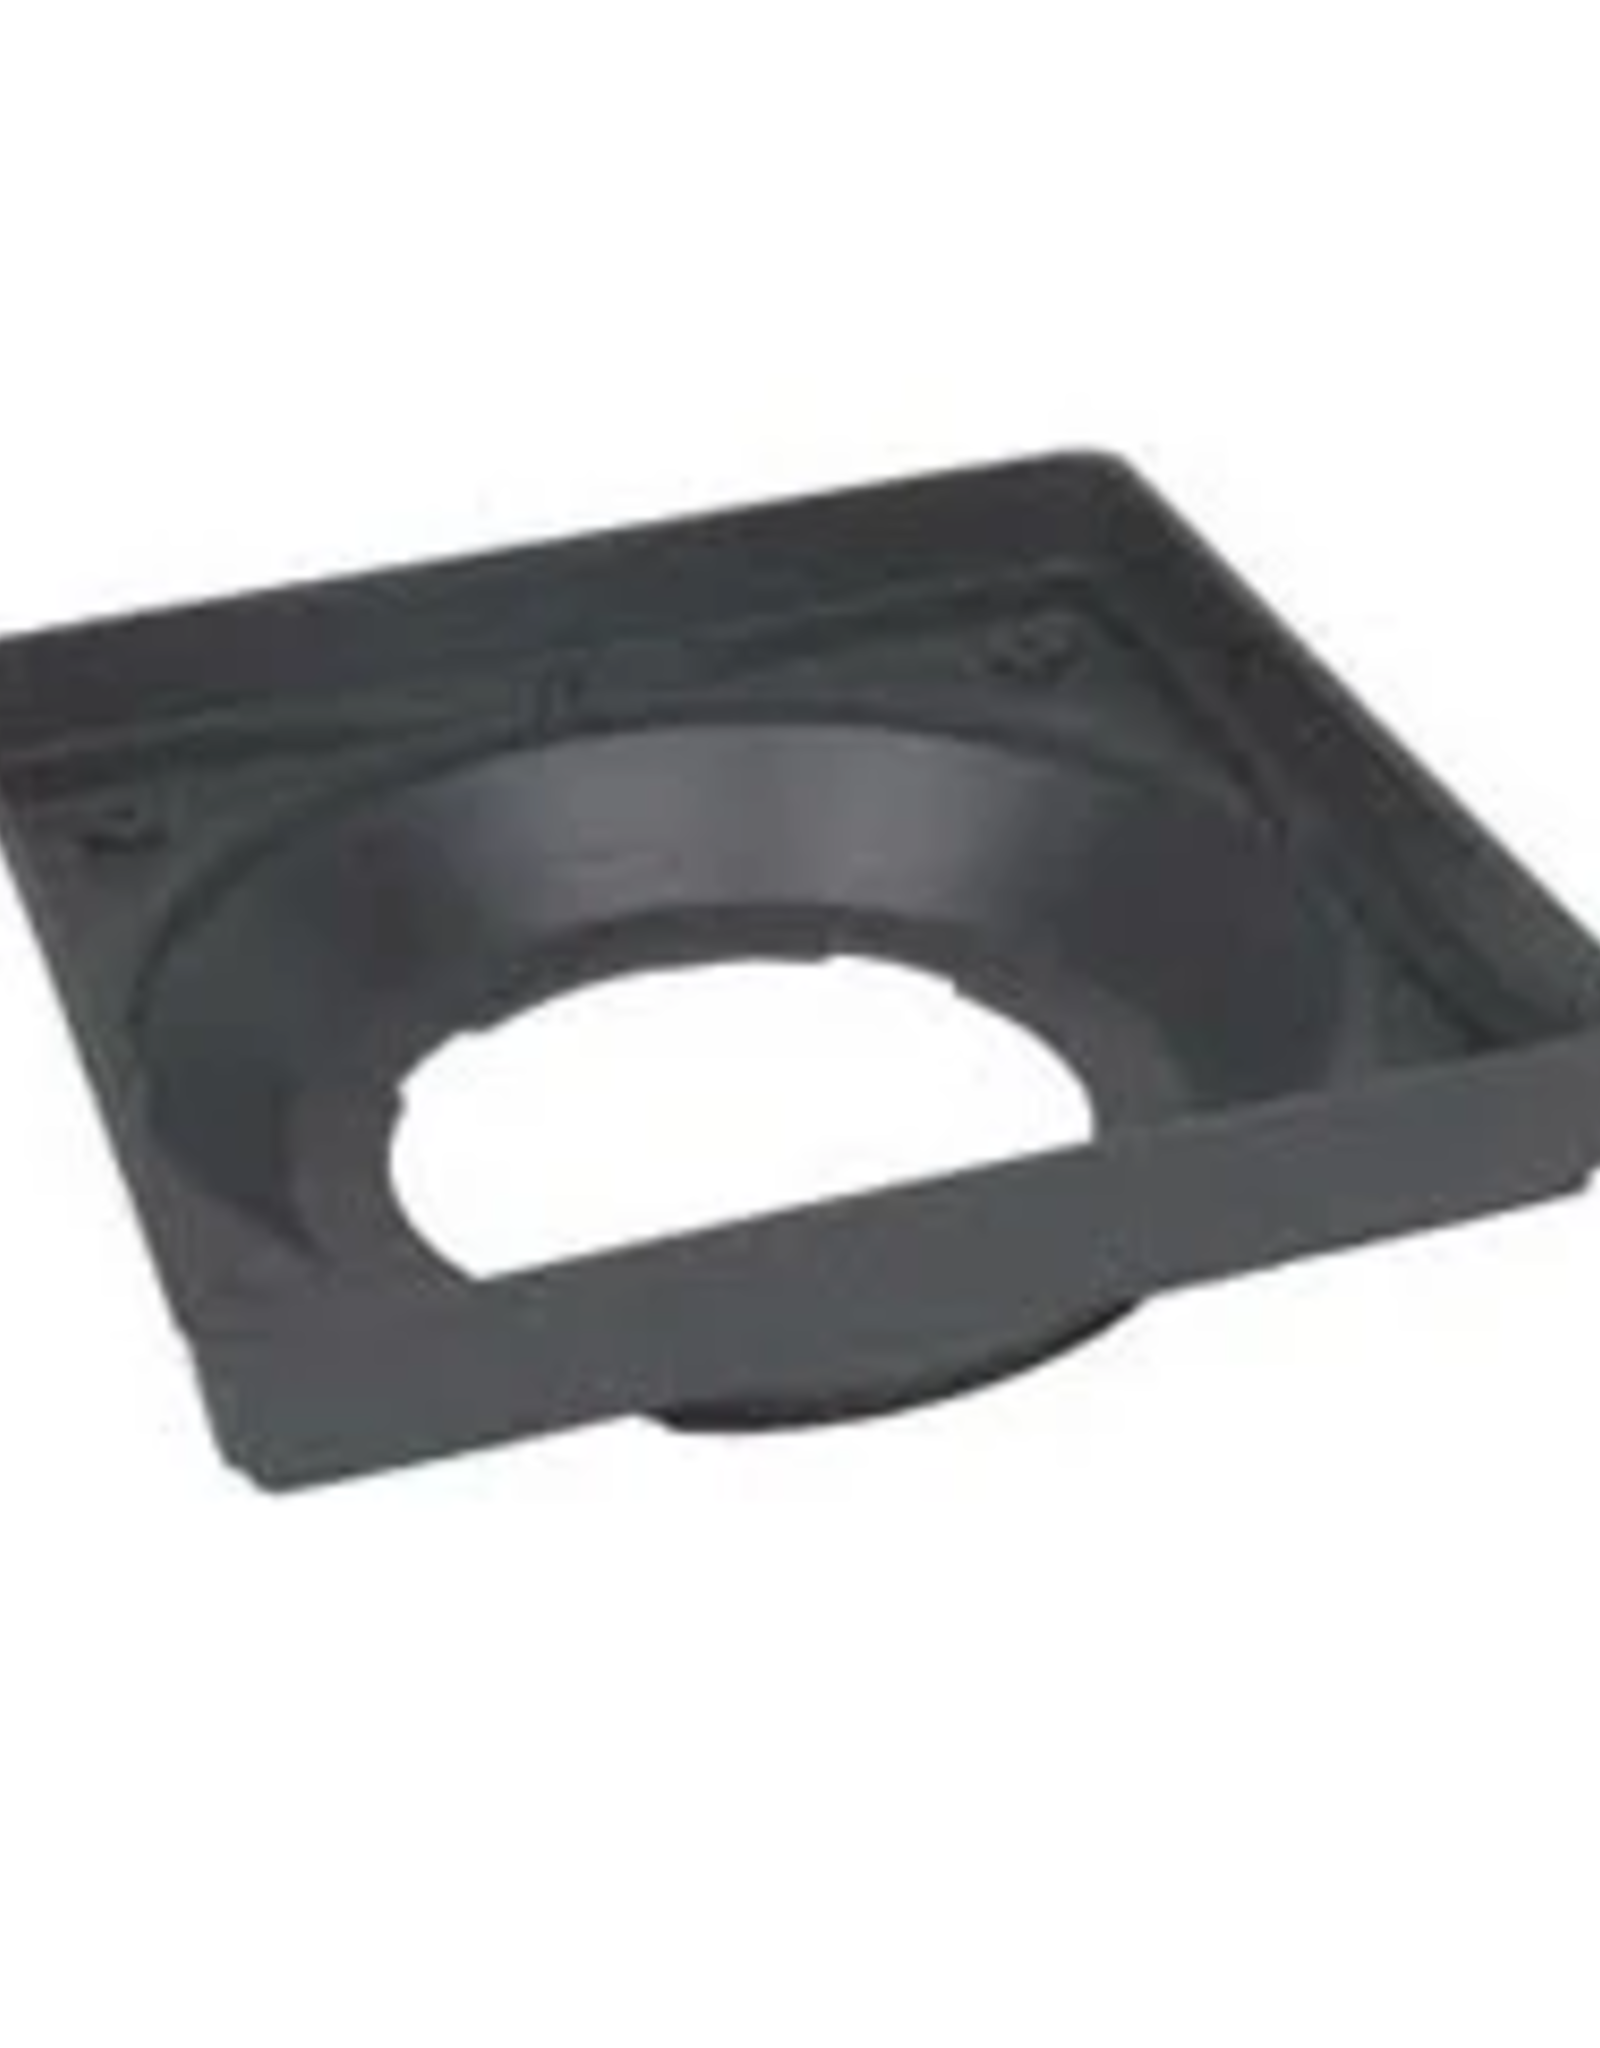 """Nds 9"""" x 9"""" Catch Basin Low Profile Adapter 930"""